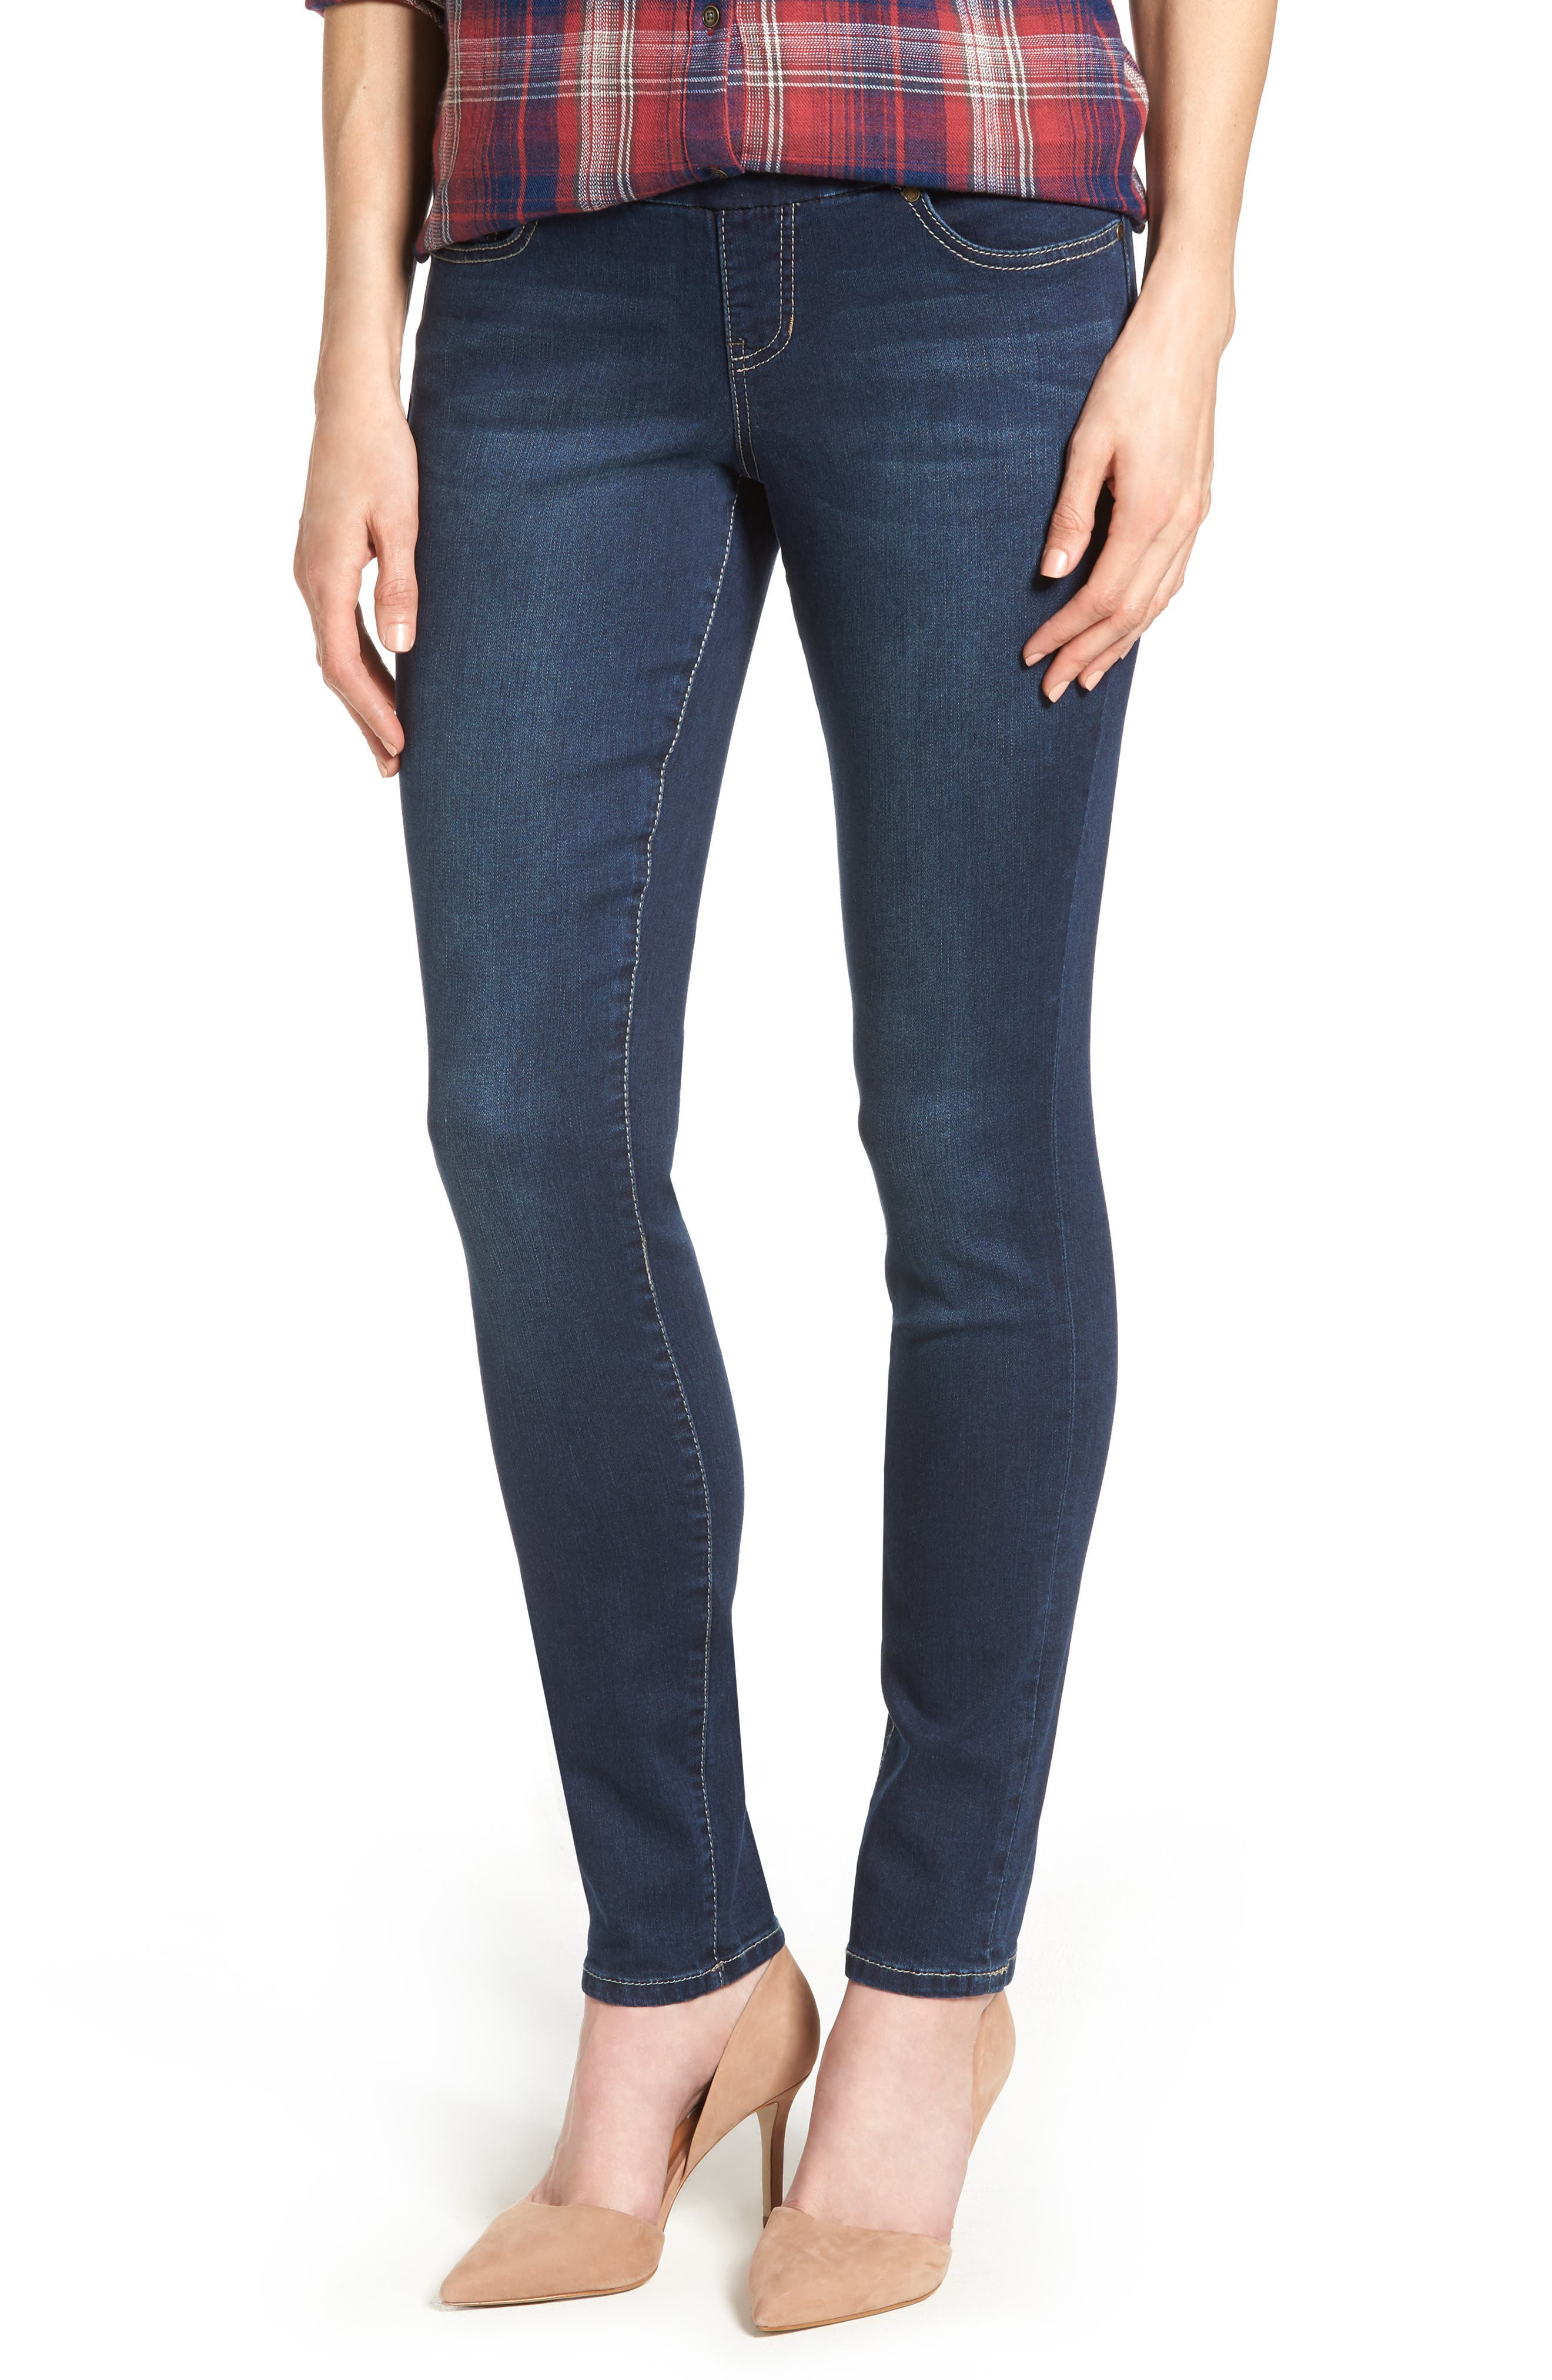 Nora Stretch Skinny Jeans,                             Main thumbnail 1, color,                             DARK INDIGO